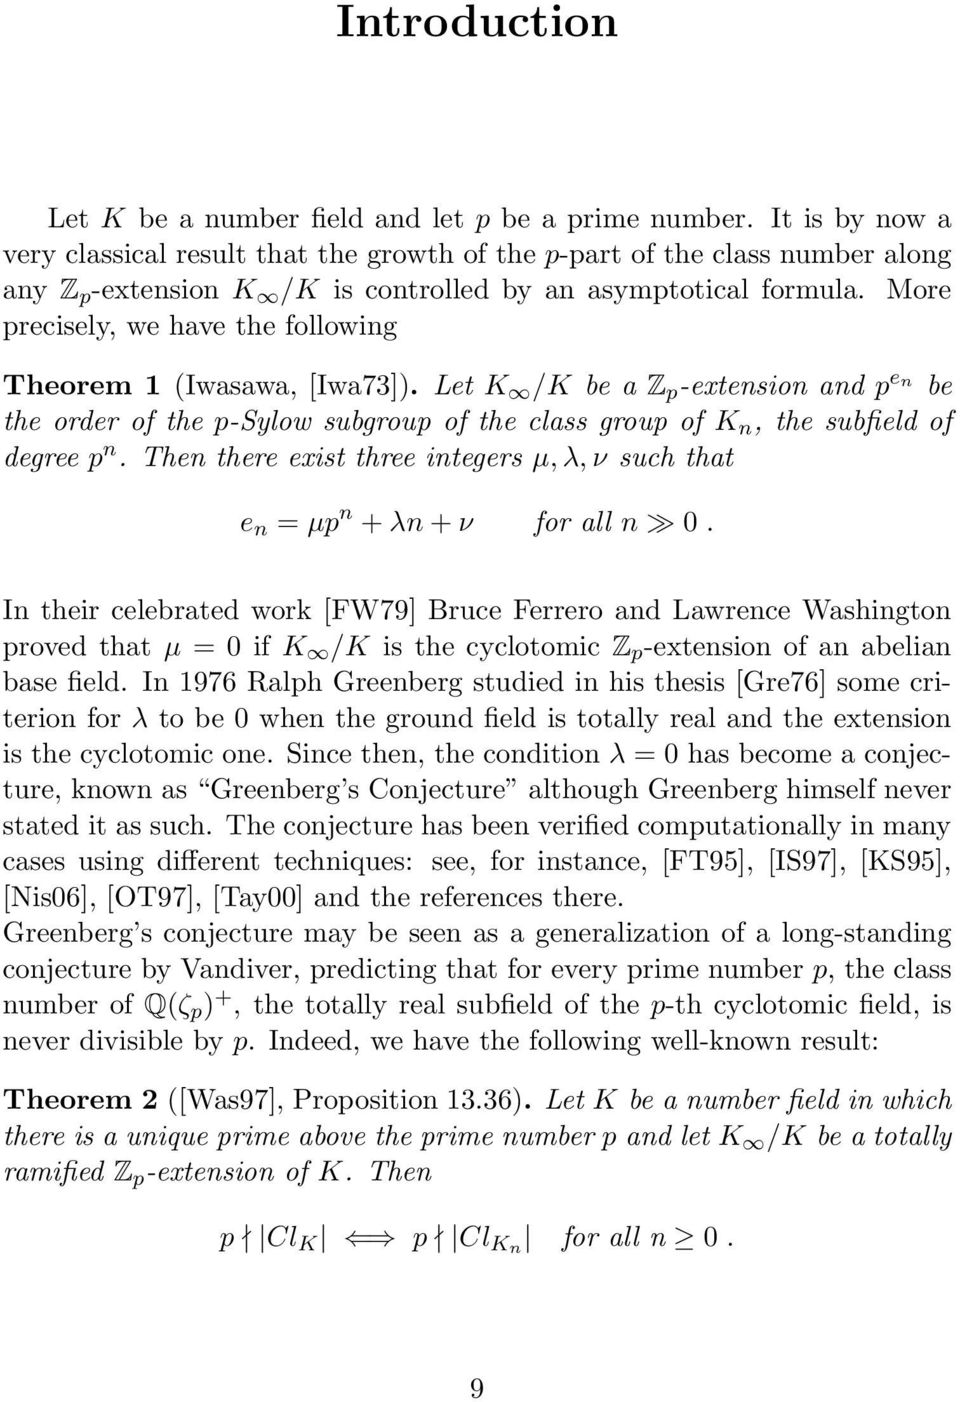 More precisely, we have the following Theorem 1 (Iwasawa, [Iwa73]). Let K /K be a Z p -extension and p en be the order of the p-sylow subgroup of the class group of K n, the subfield of degree p n.